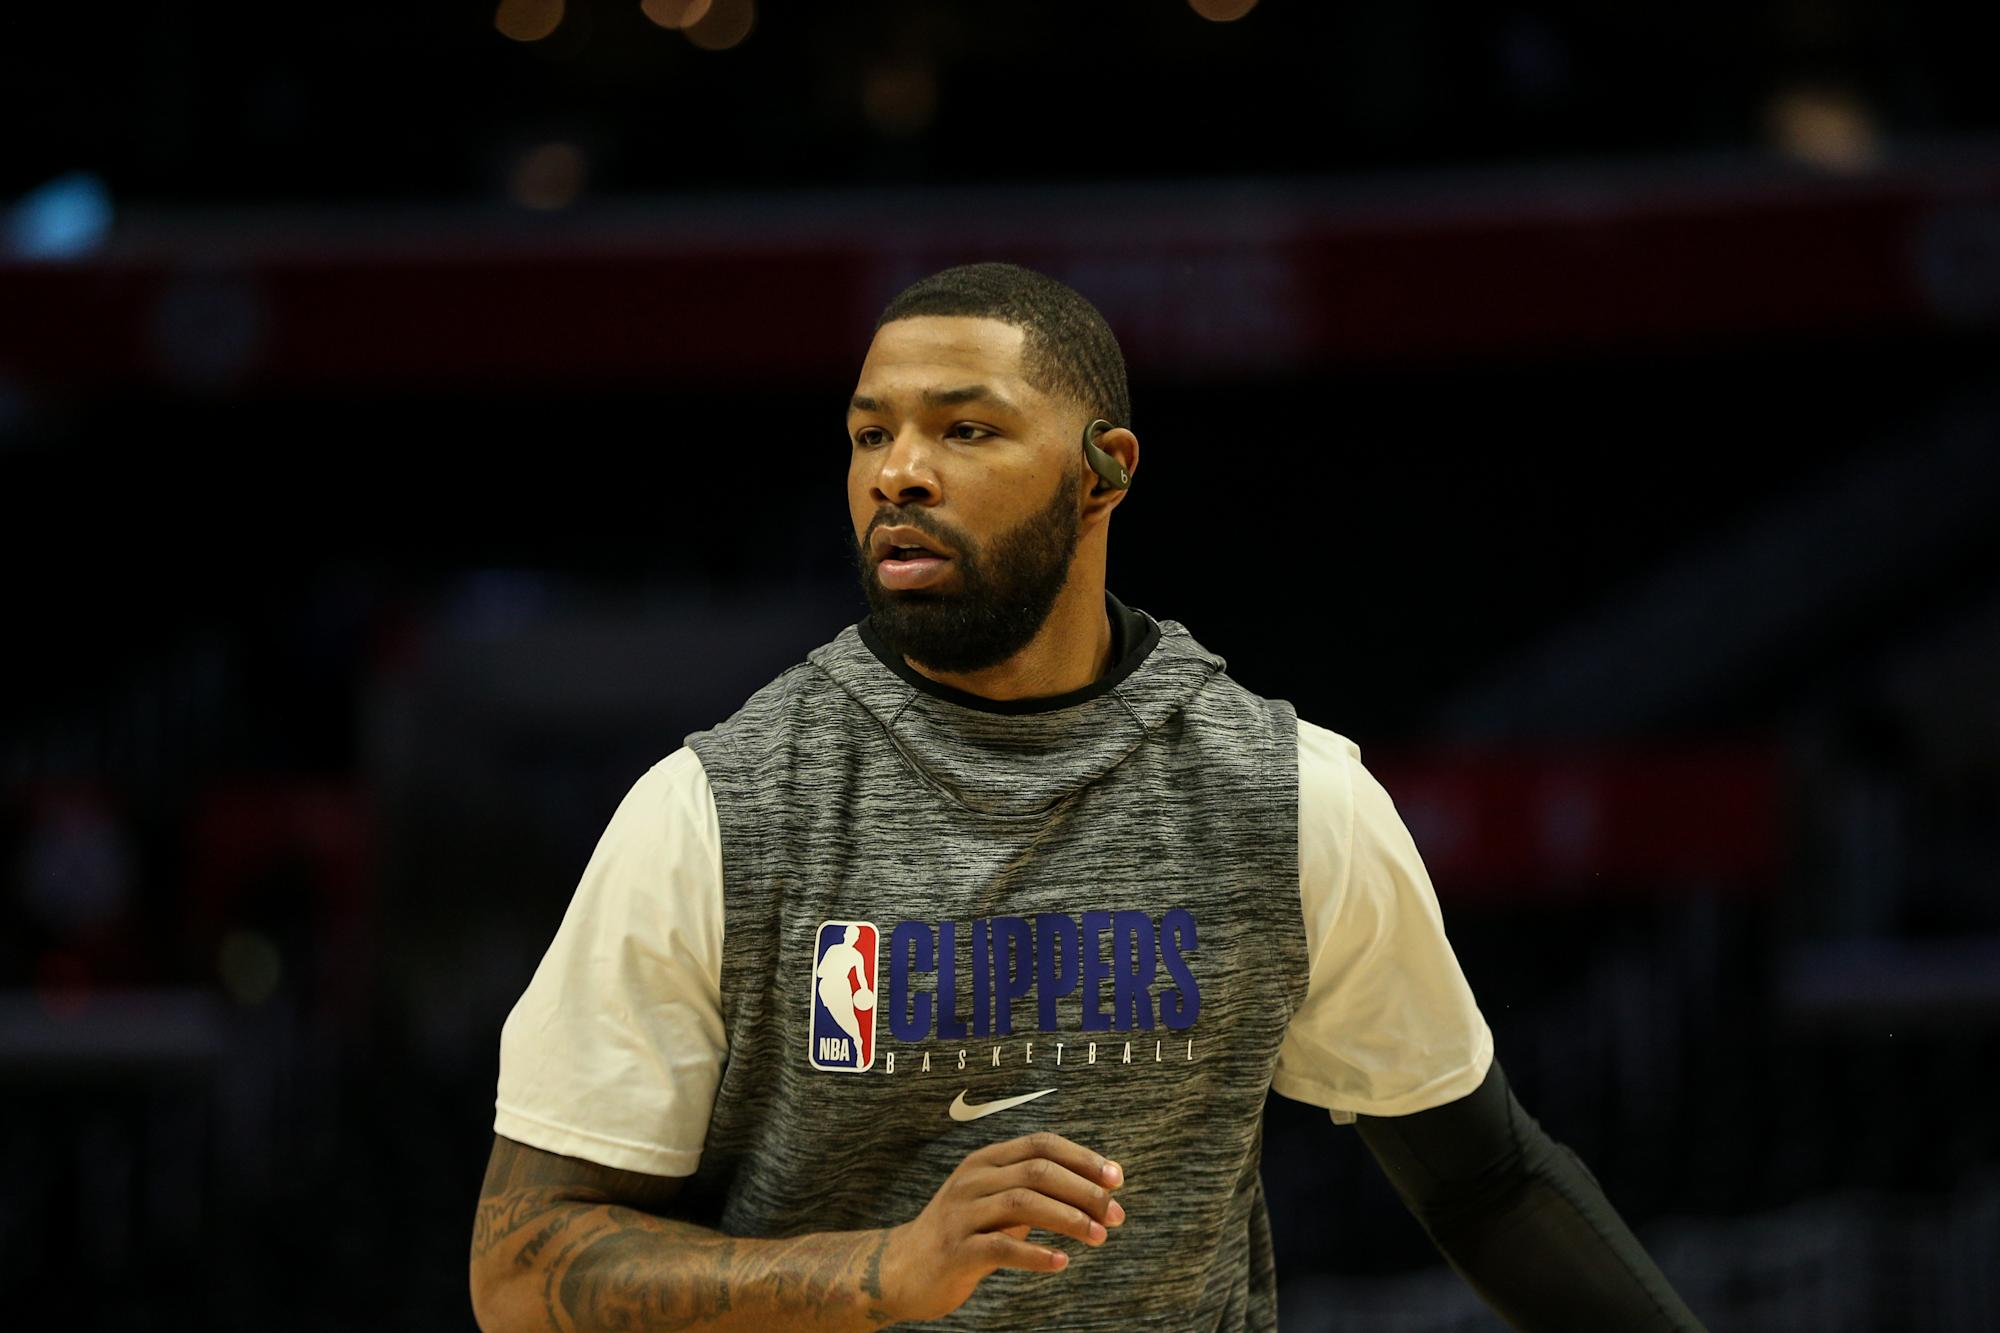 au.finance.yahoo.com: Marcus Morris returns to Clippers on four-year,  million deal